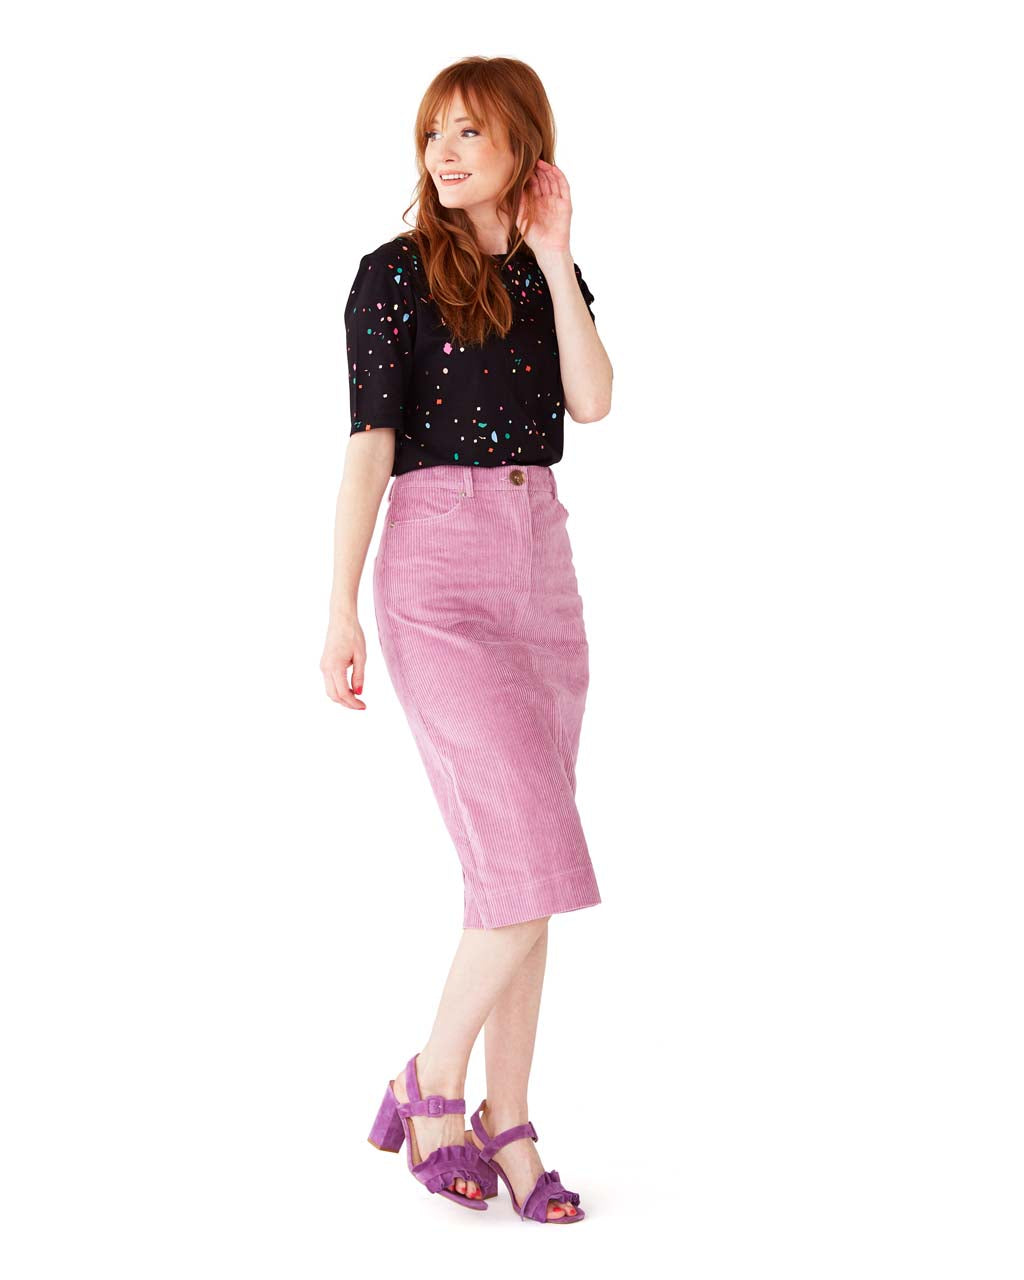 red headed model shown wearing lavender corduroy skit paired with a black tee and purple heels